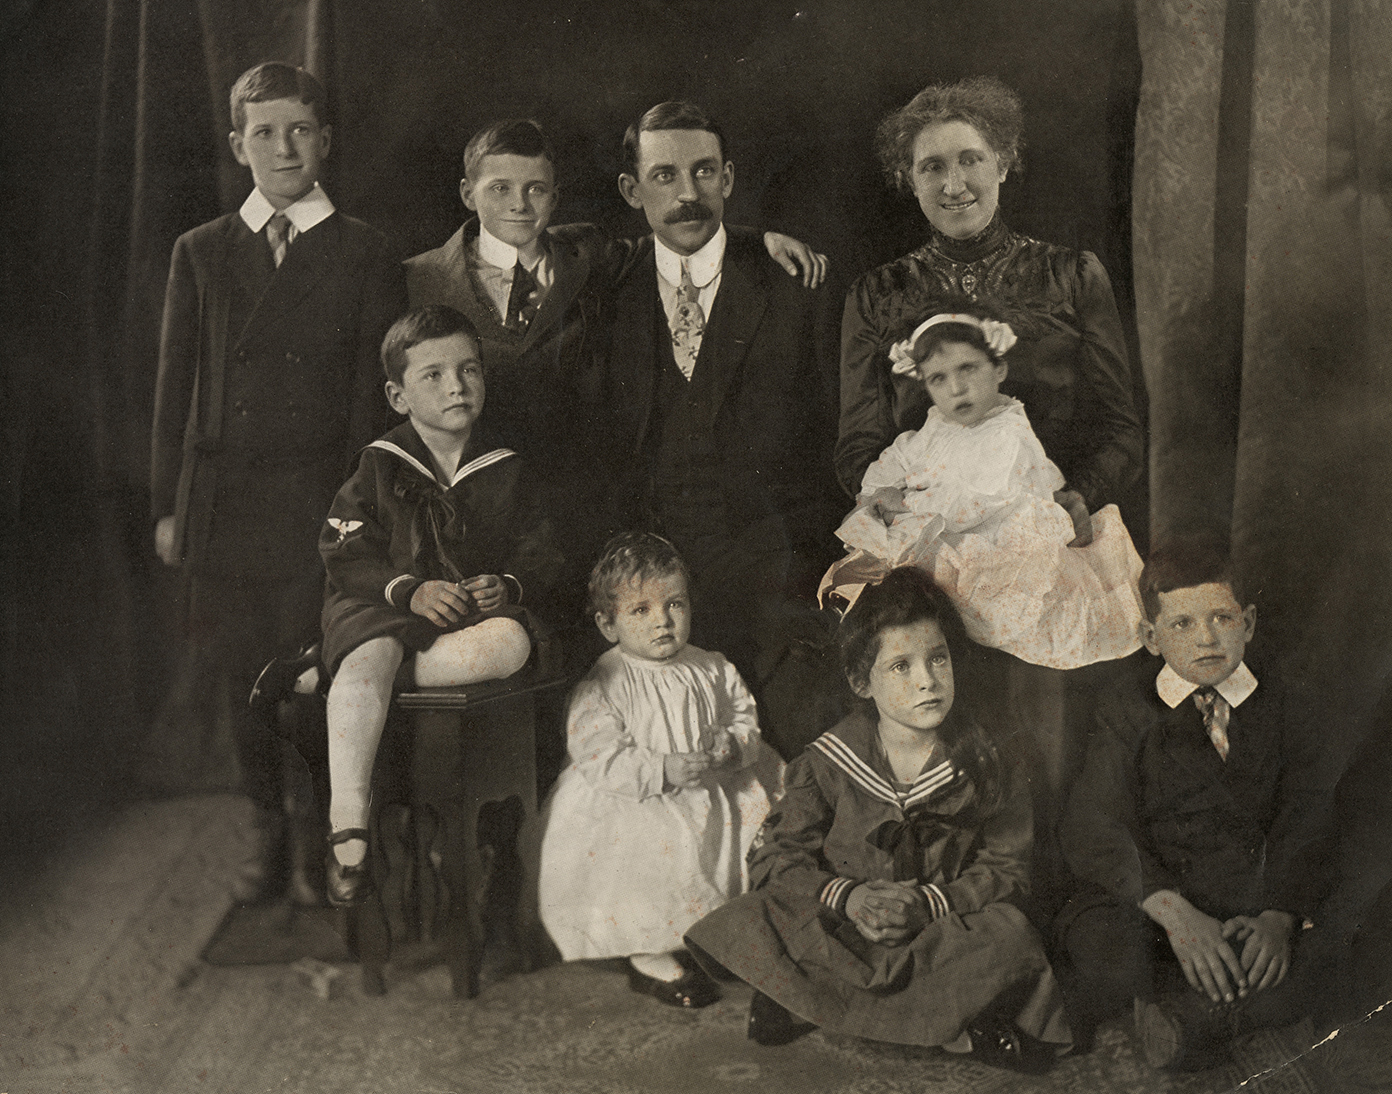 Thomas A. Daly (with wife and children)